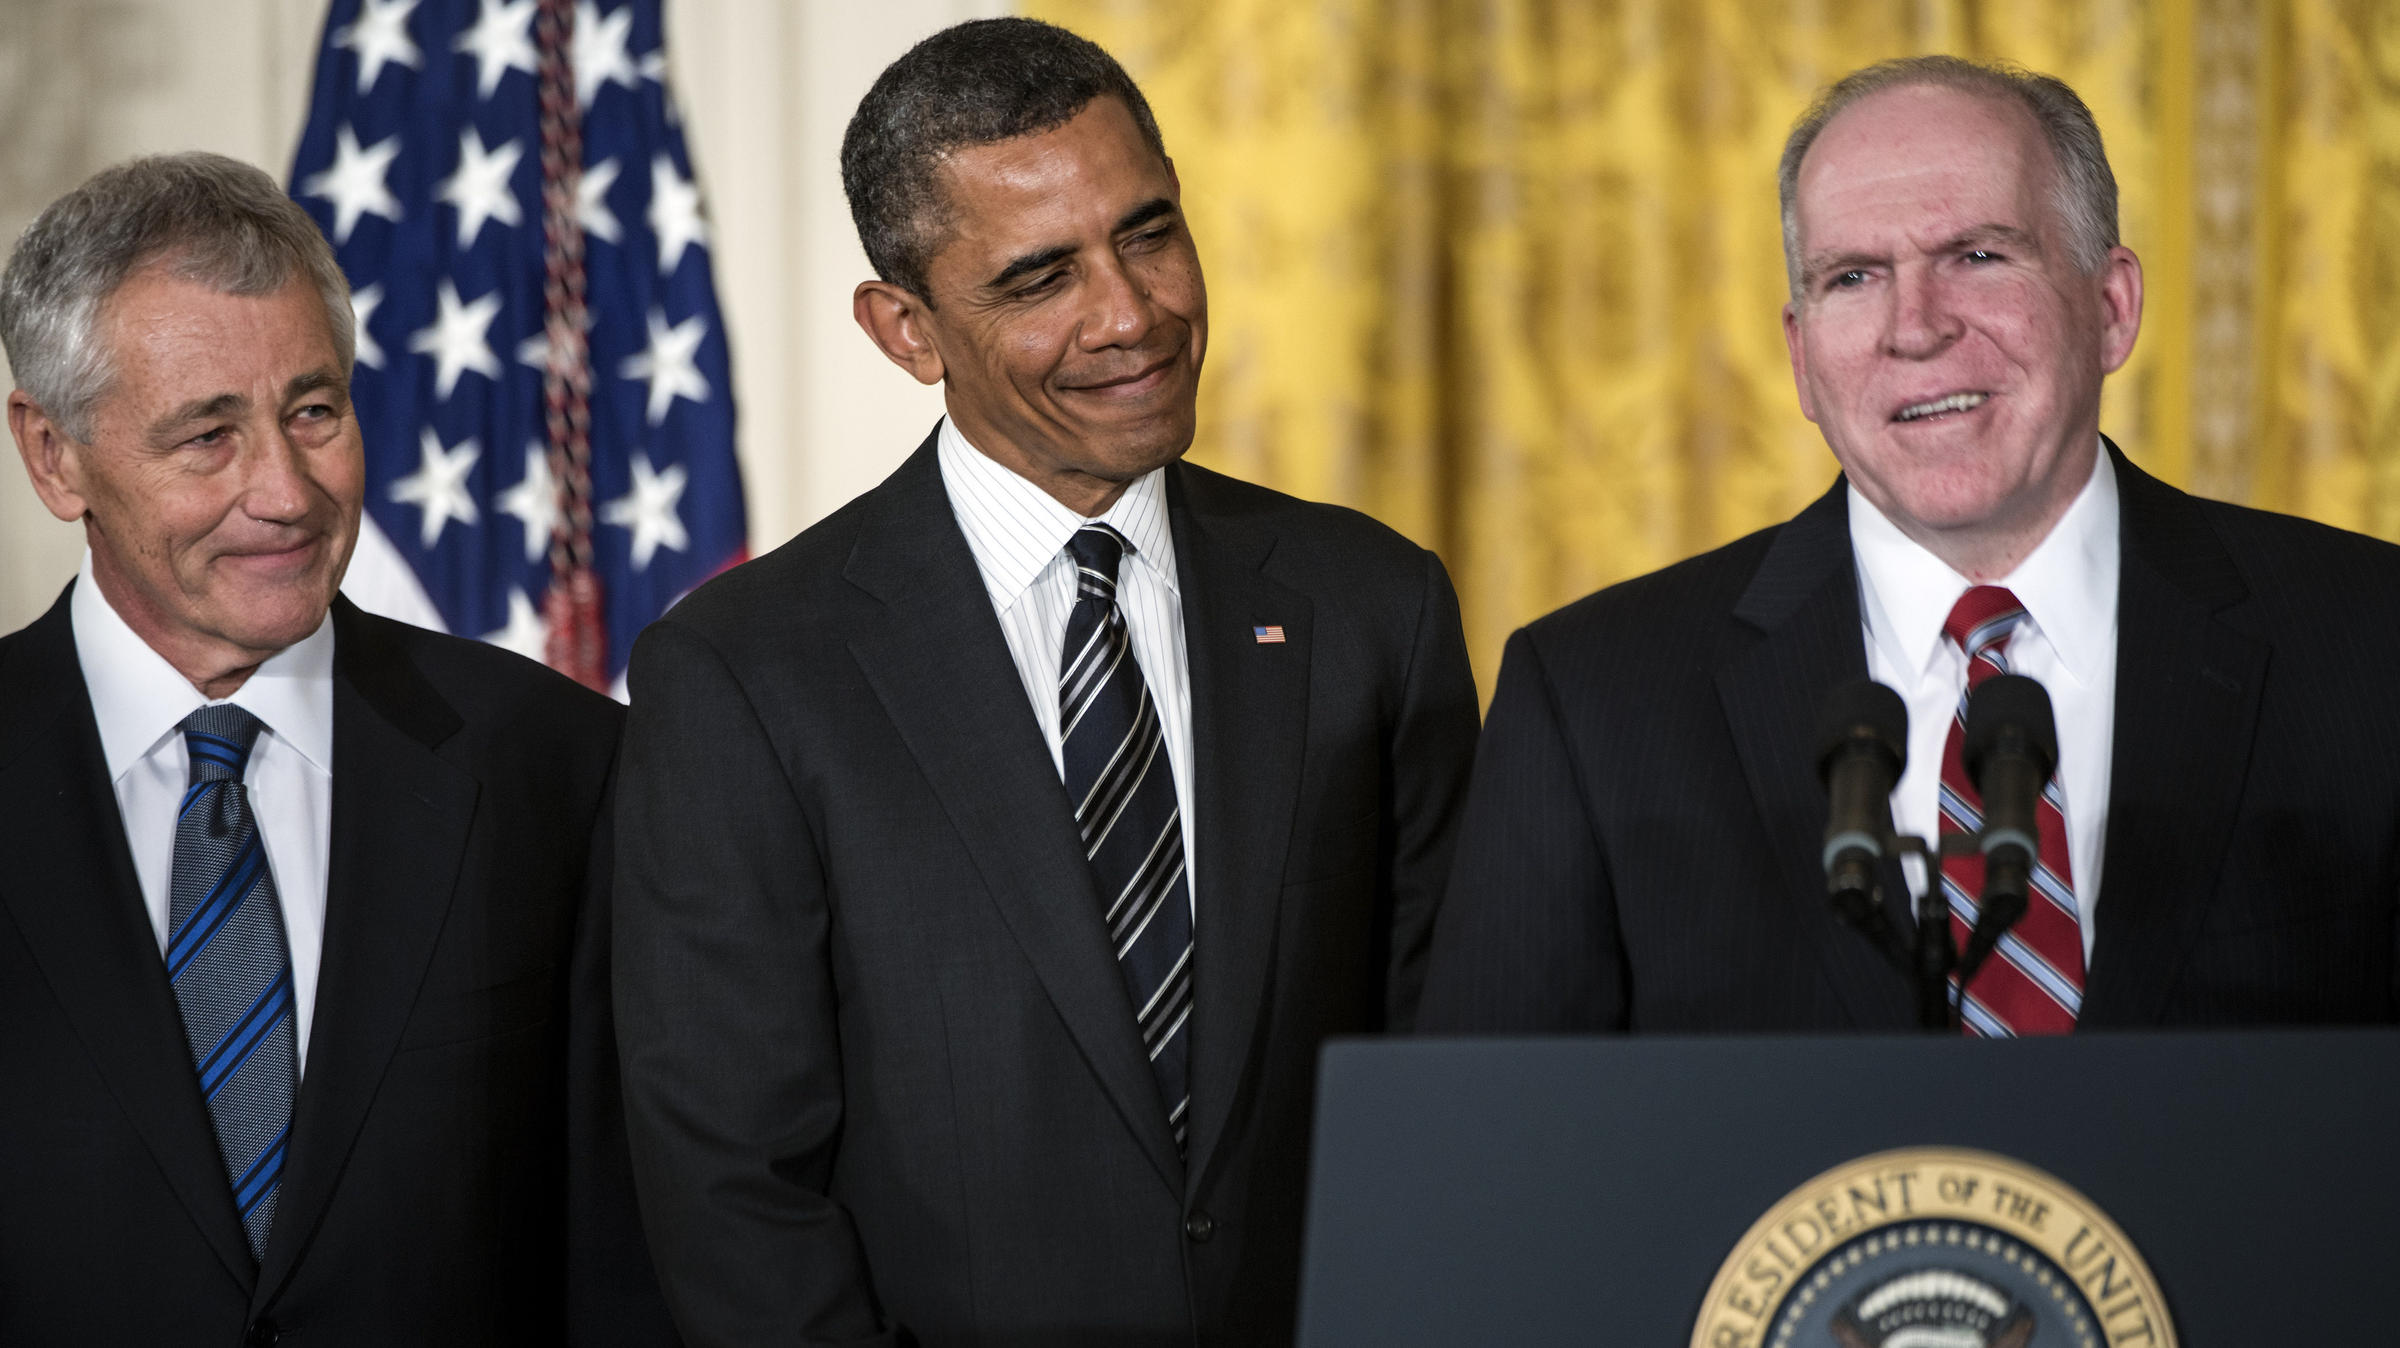 Former head of the CIA says Obama never tapped Trumps phones Former head of the CIA says Obama never tapped Trumps phones new picture